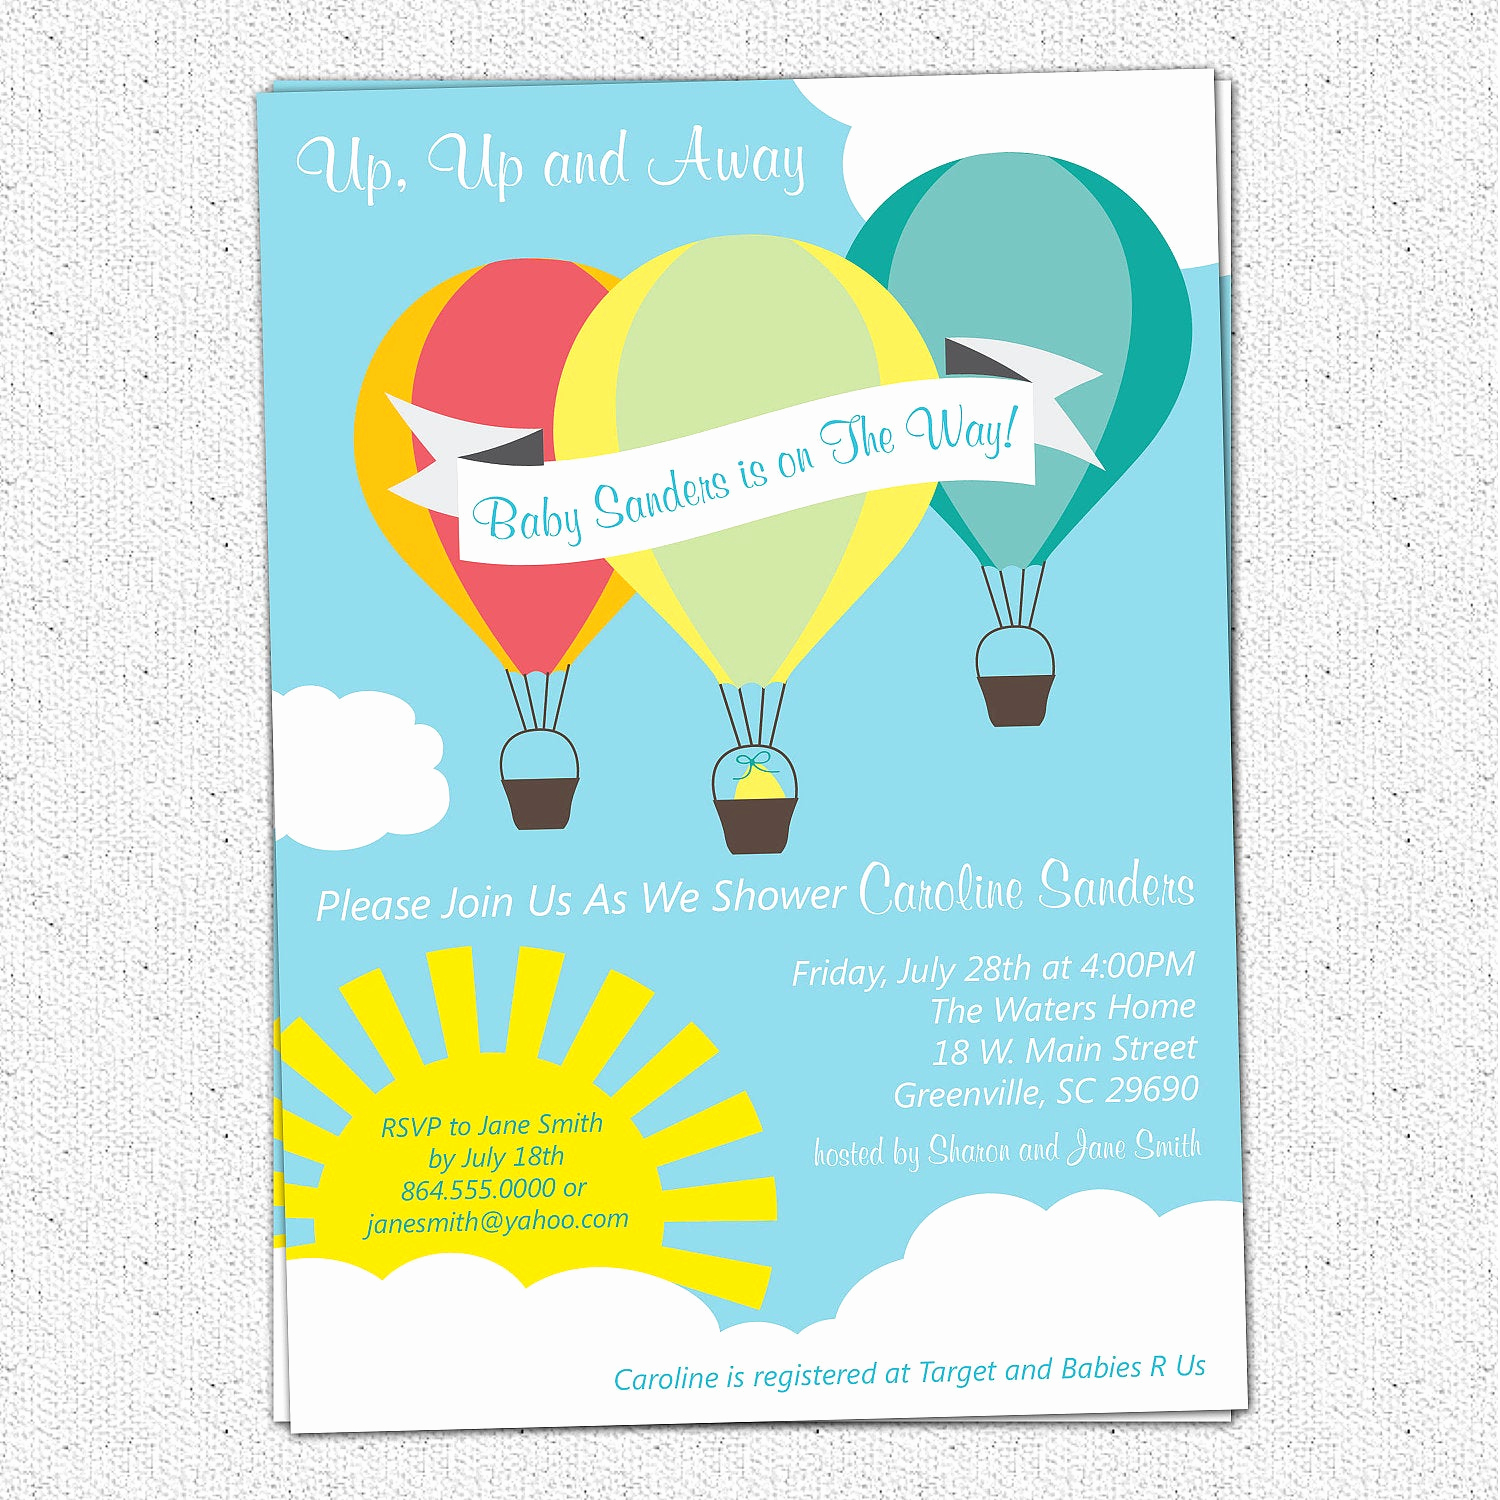 Hot Air Balloon Invitation Fresh Hot Air Balloon Sunshine Baby Shower Invitation Printable